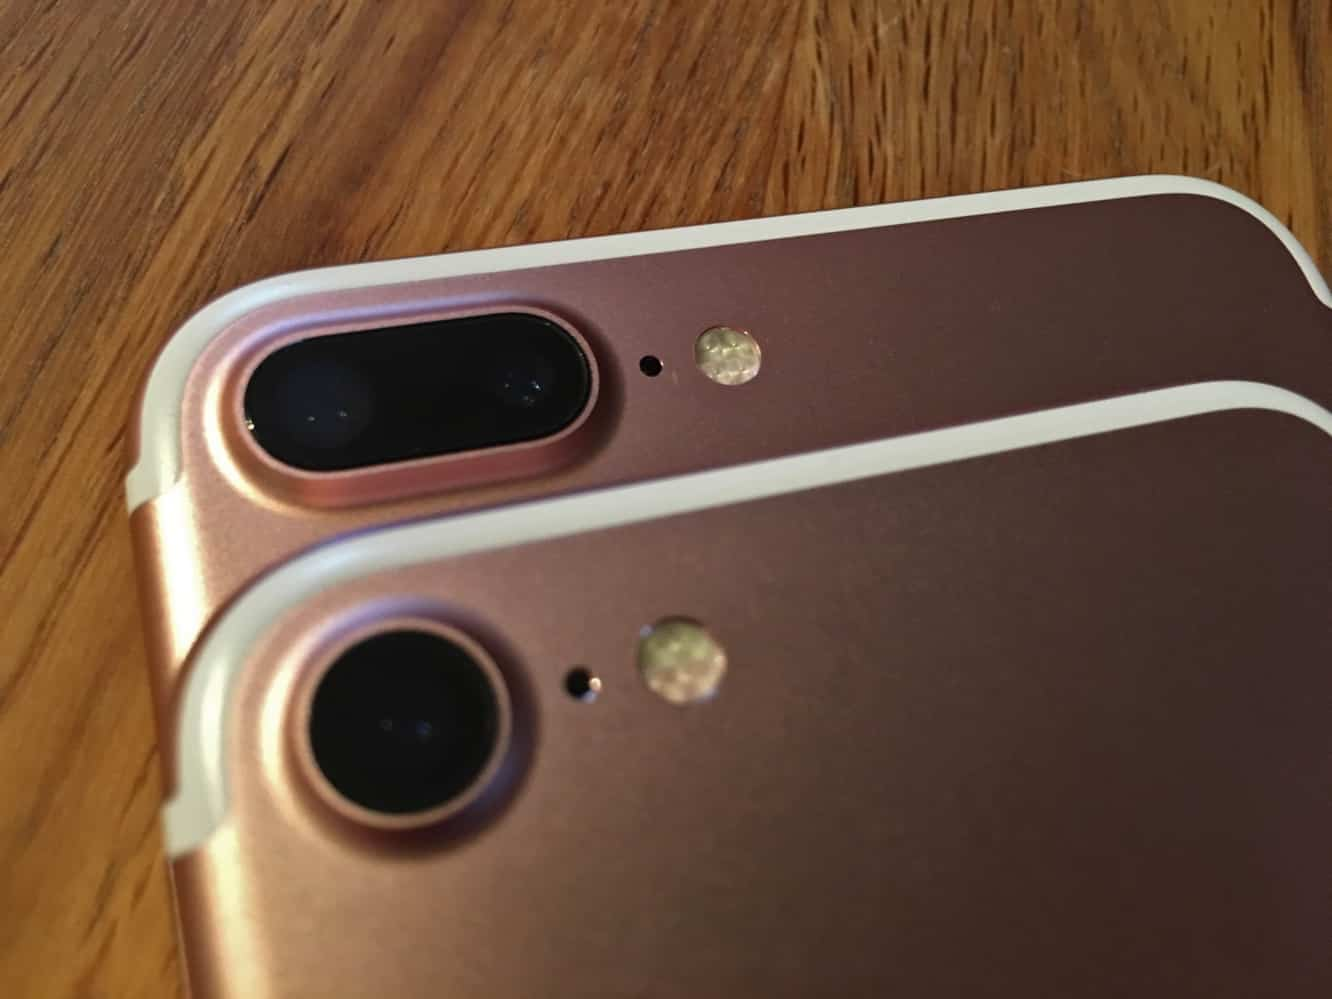 Apple considering rear 3D laser for ARKit applications and autofocus